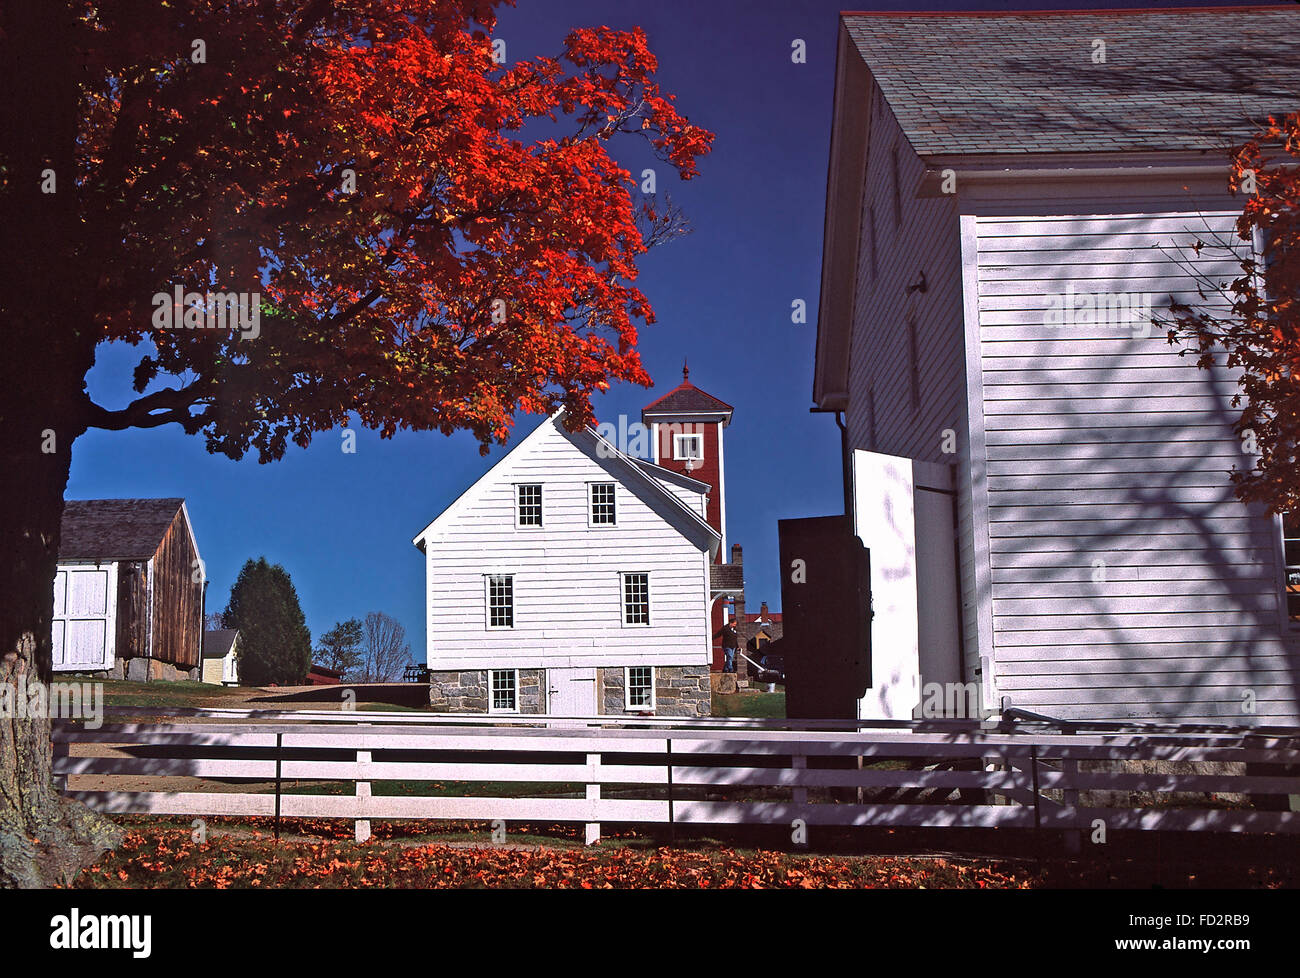 Canterberry Shaker Village at Canterberry Center,New Hampshirew - Stock Image